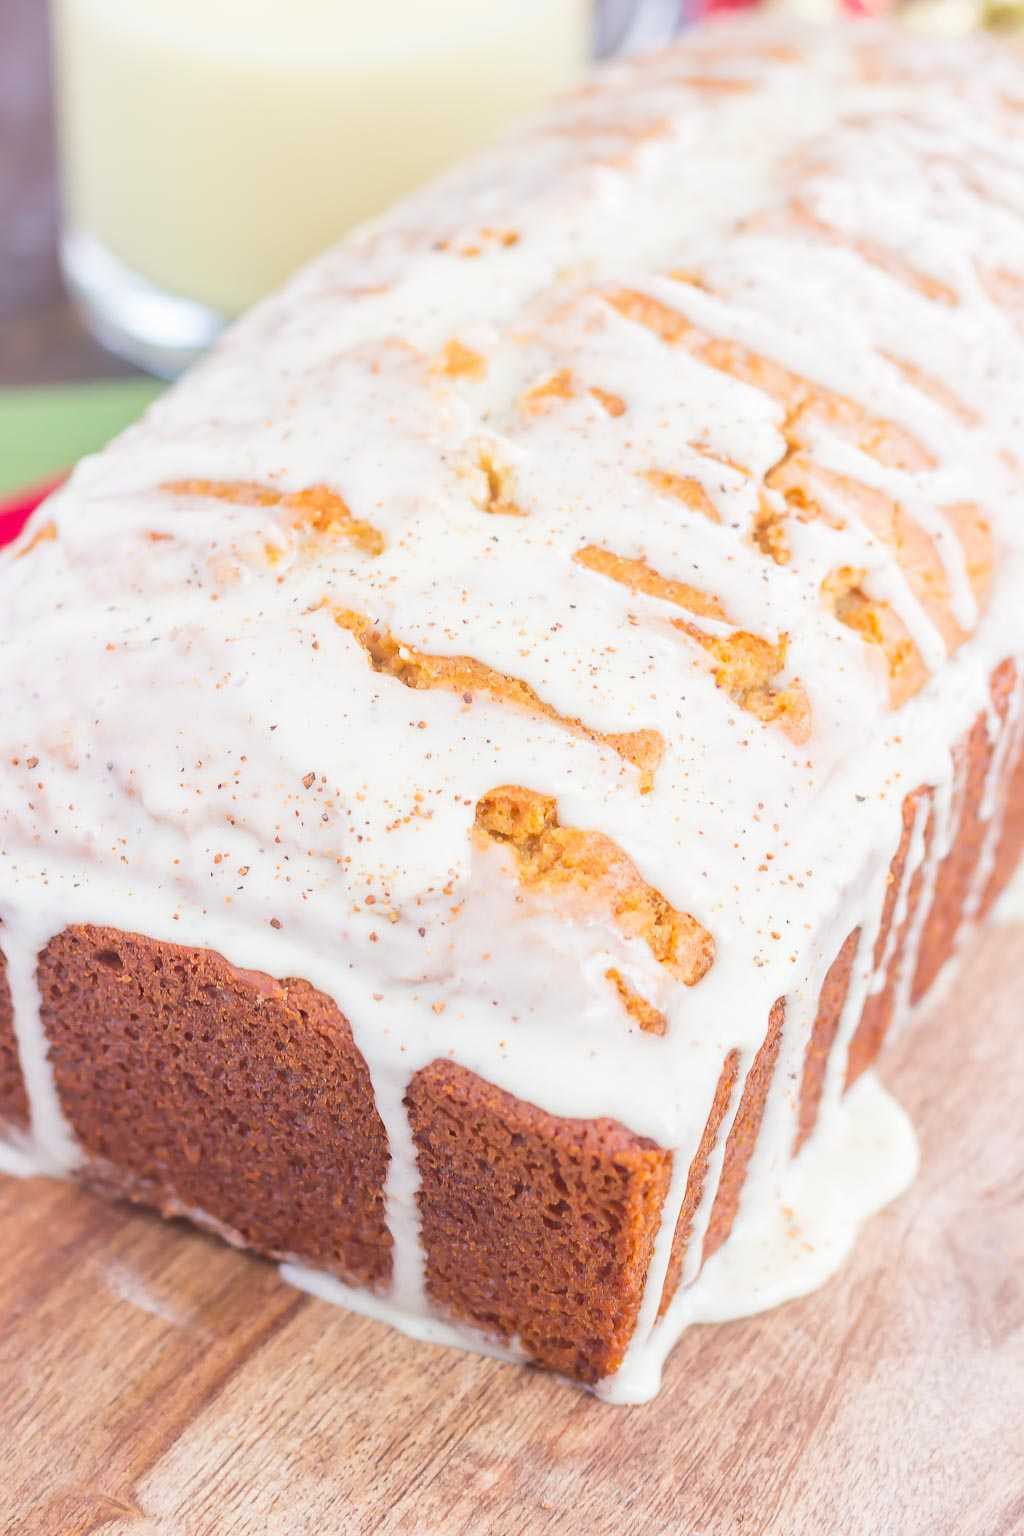 This Glazed Eggnog Bread is filled with warm holiday spices and makes a deliciously festive treat. Soft, moist and bursting with a subtle hint of eggnog, you'll love the flavors of this bread that would make a decadent breakfast or dessert!